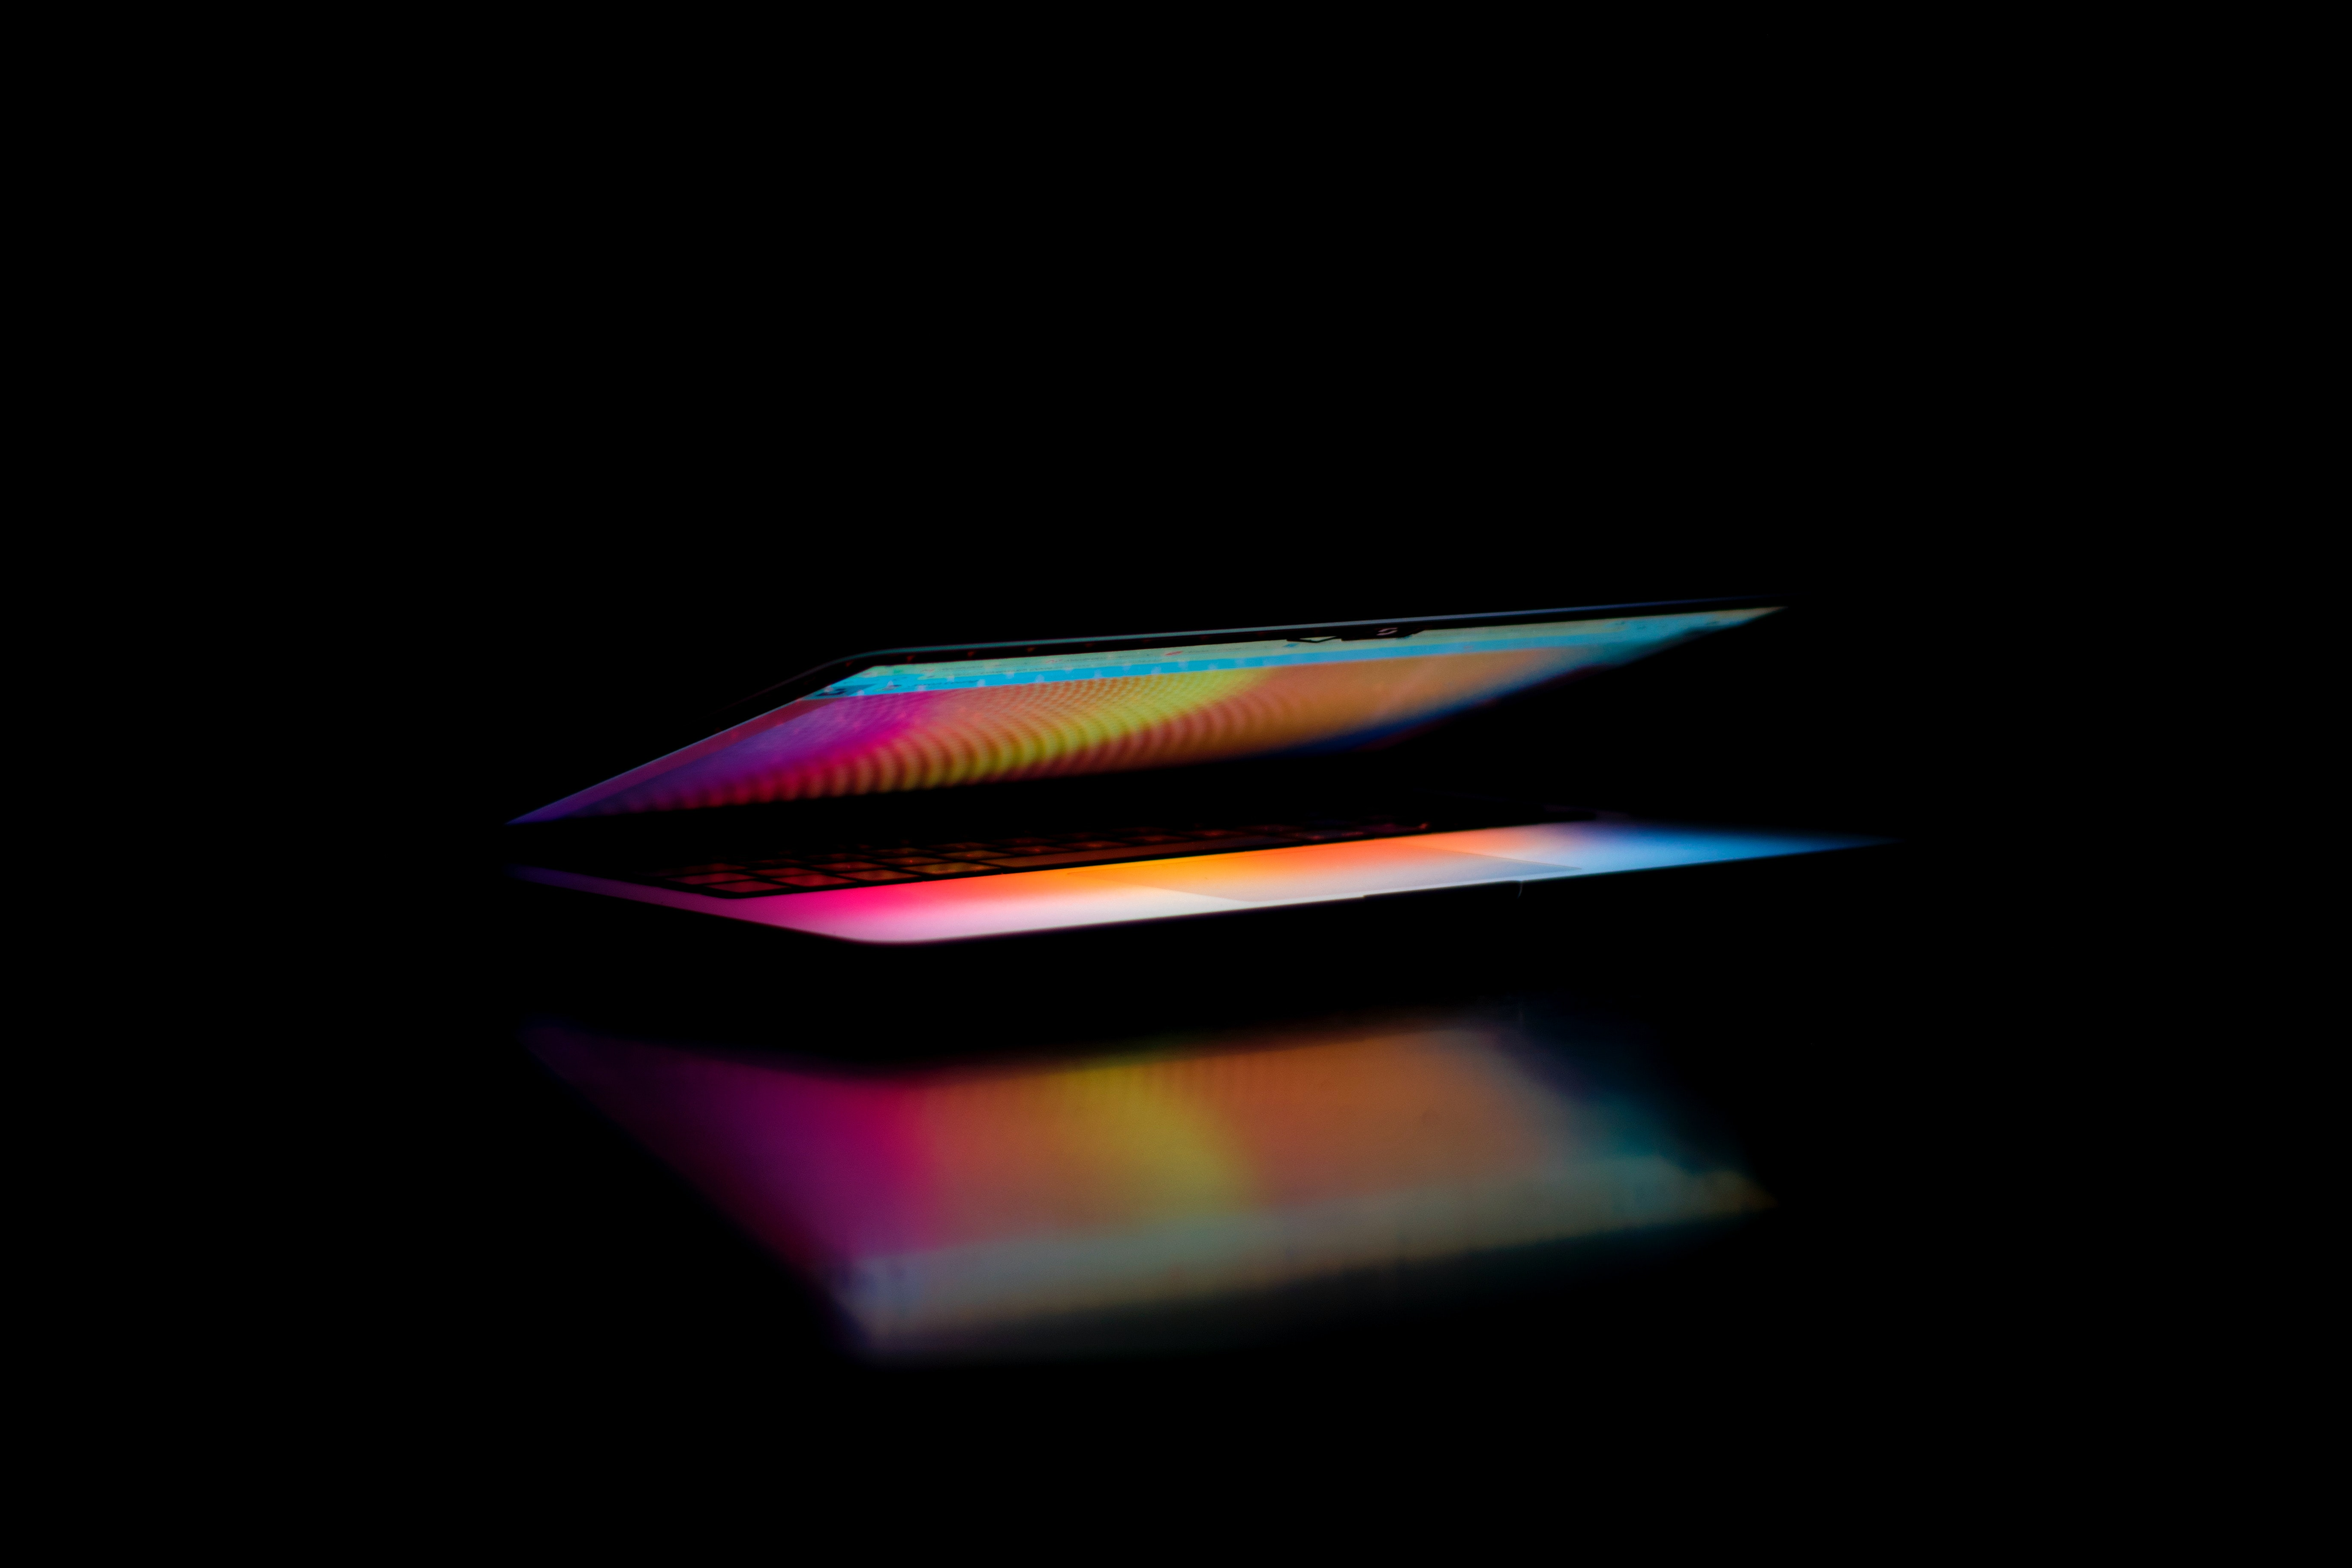 Image - A laptop with a glowing light.